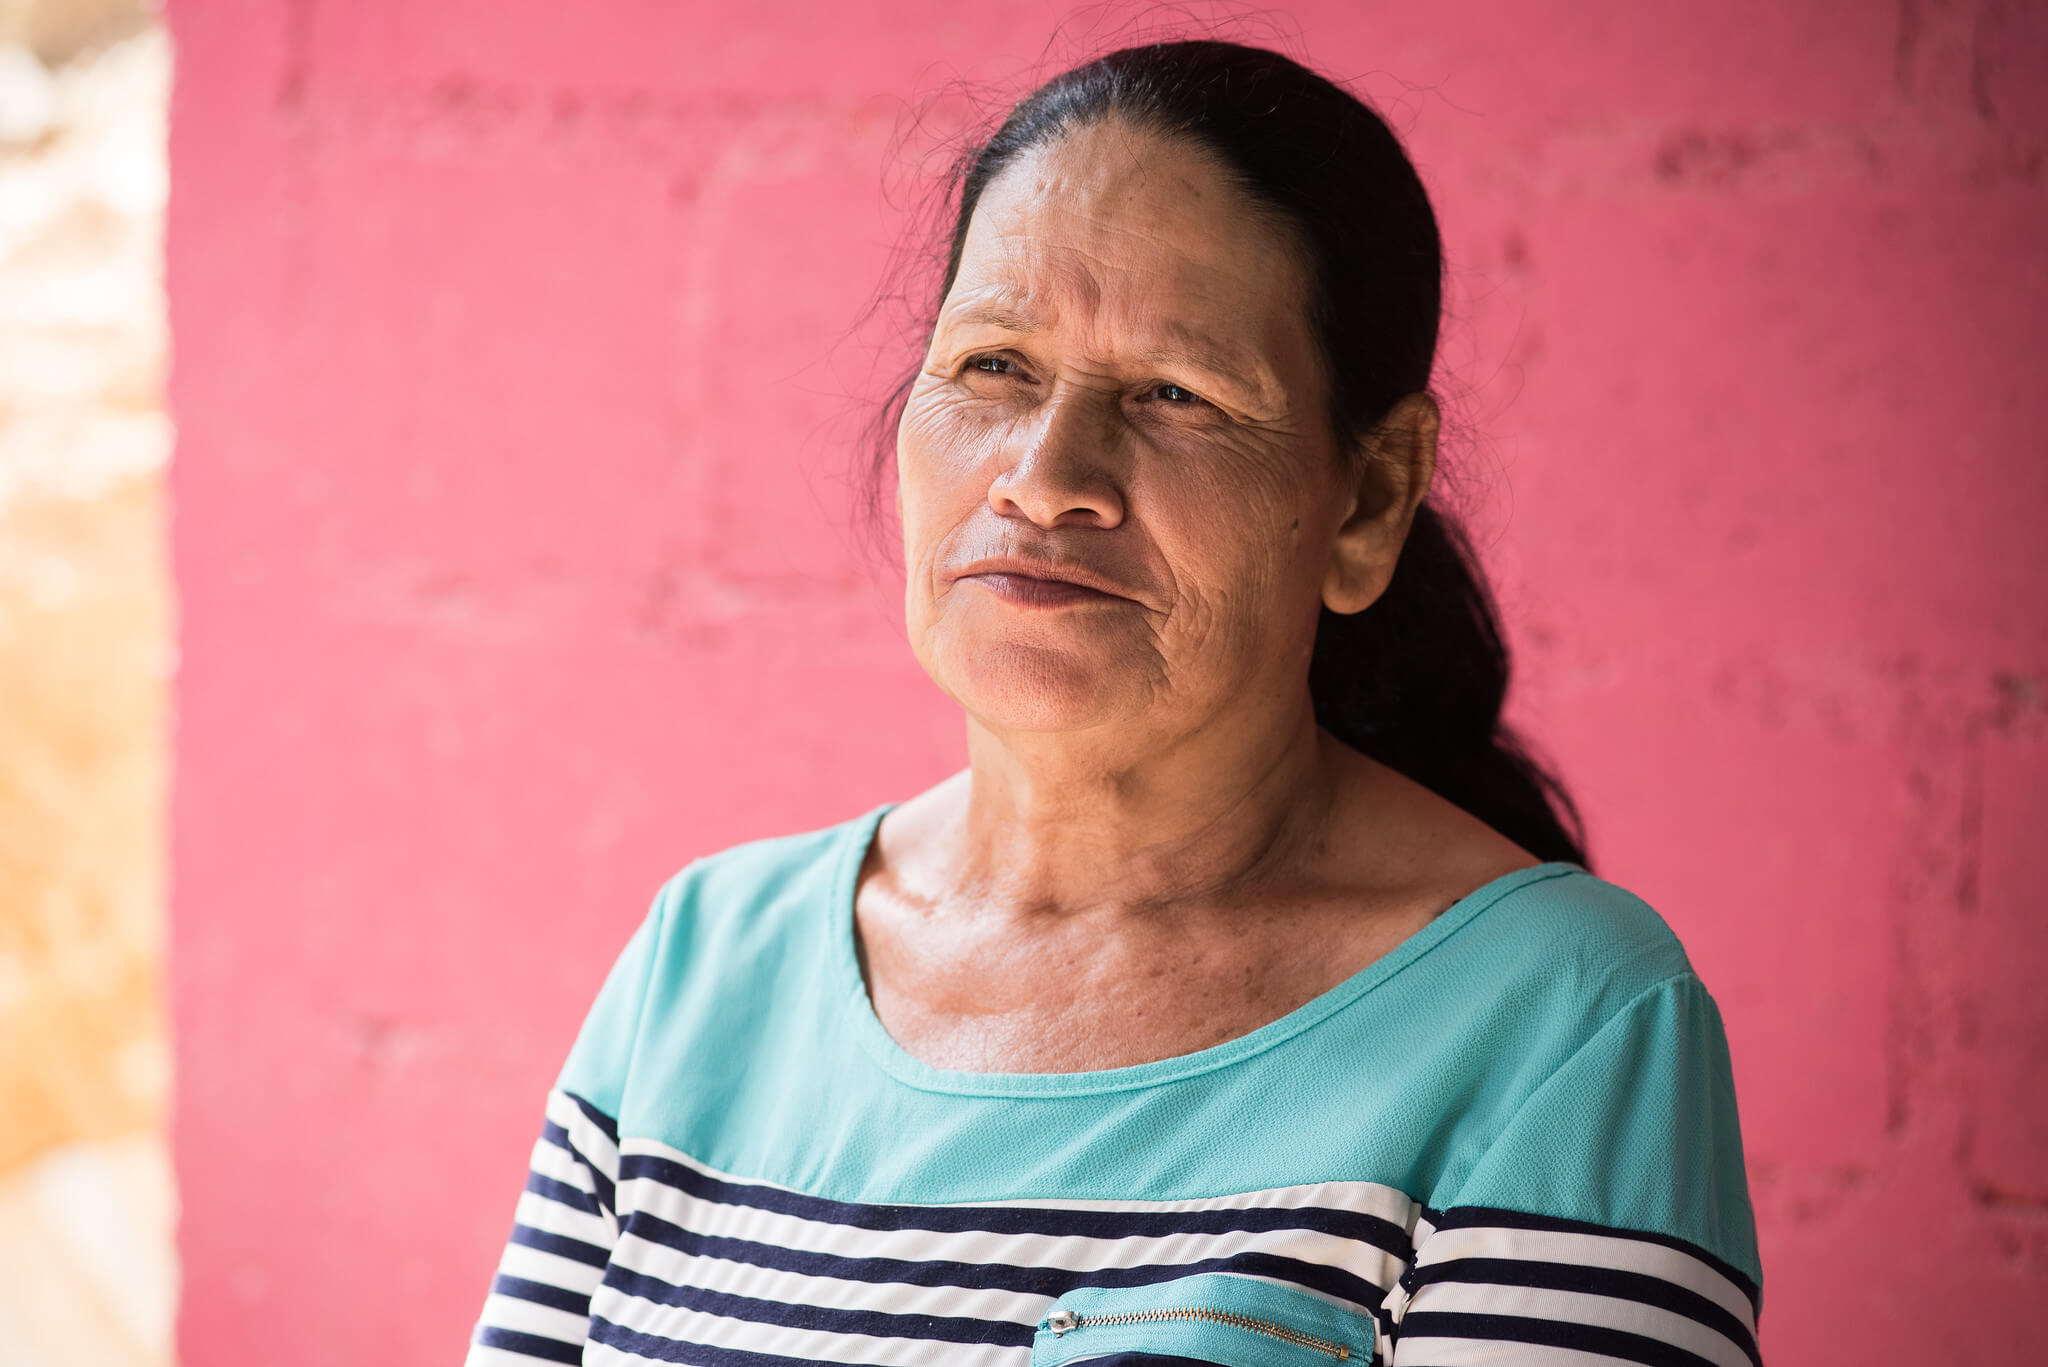 Flores Mira Lopez, 59, from Azacualpa in Honduras. Photo Garry Walsh